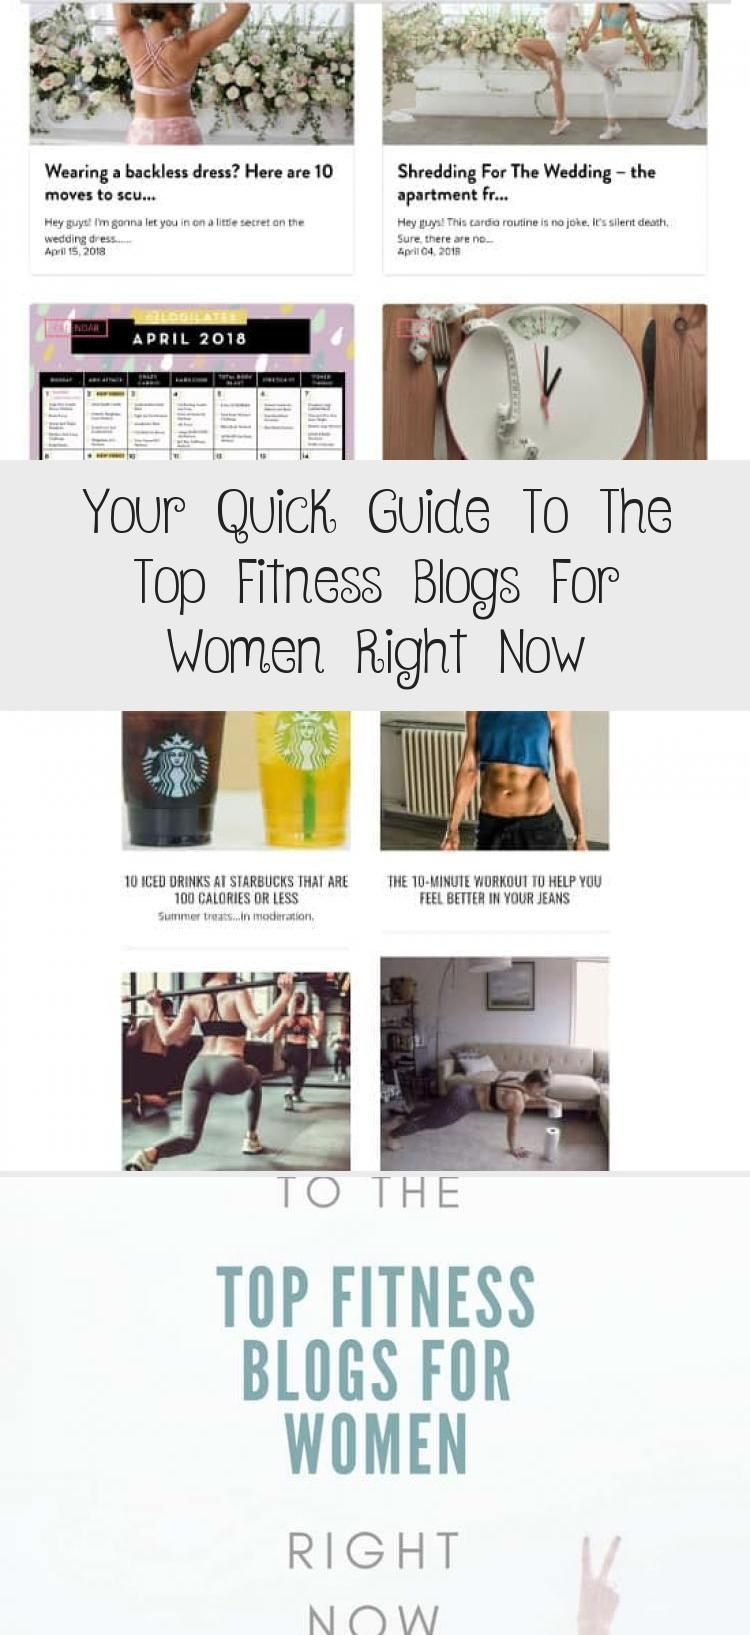 Your Quick Guide To The Top Fitness Blogs For Women Right Now - health and diet fitness -  Your Simp...